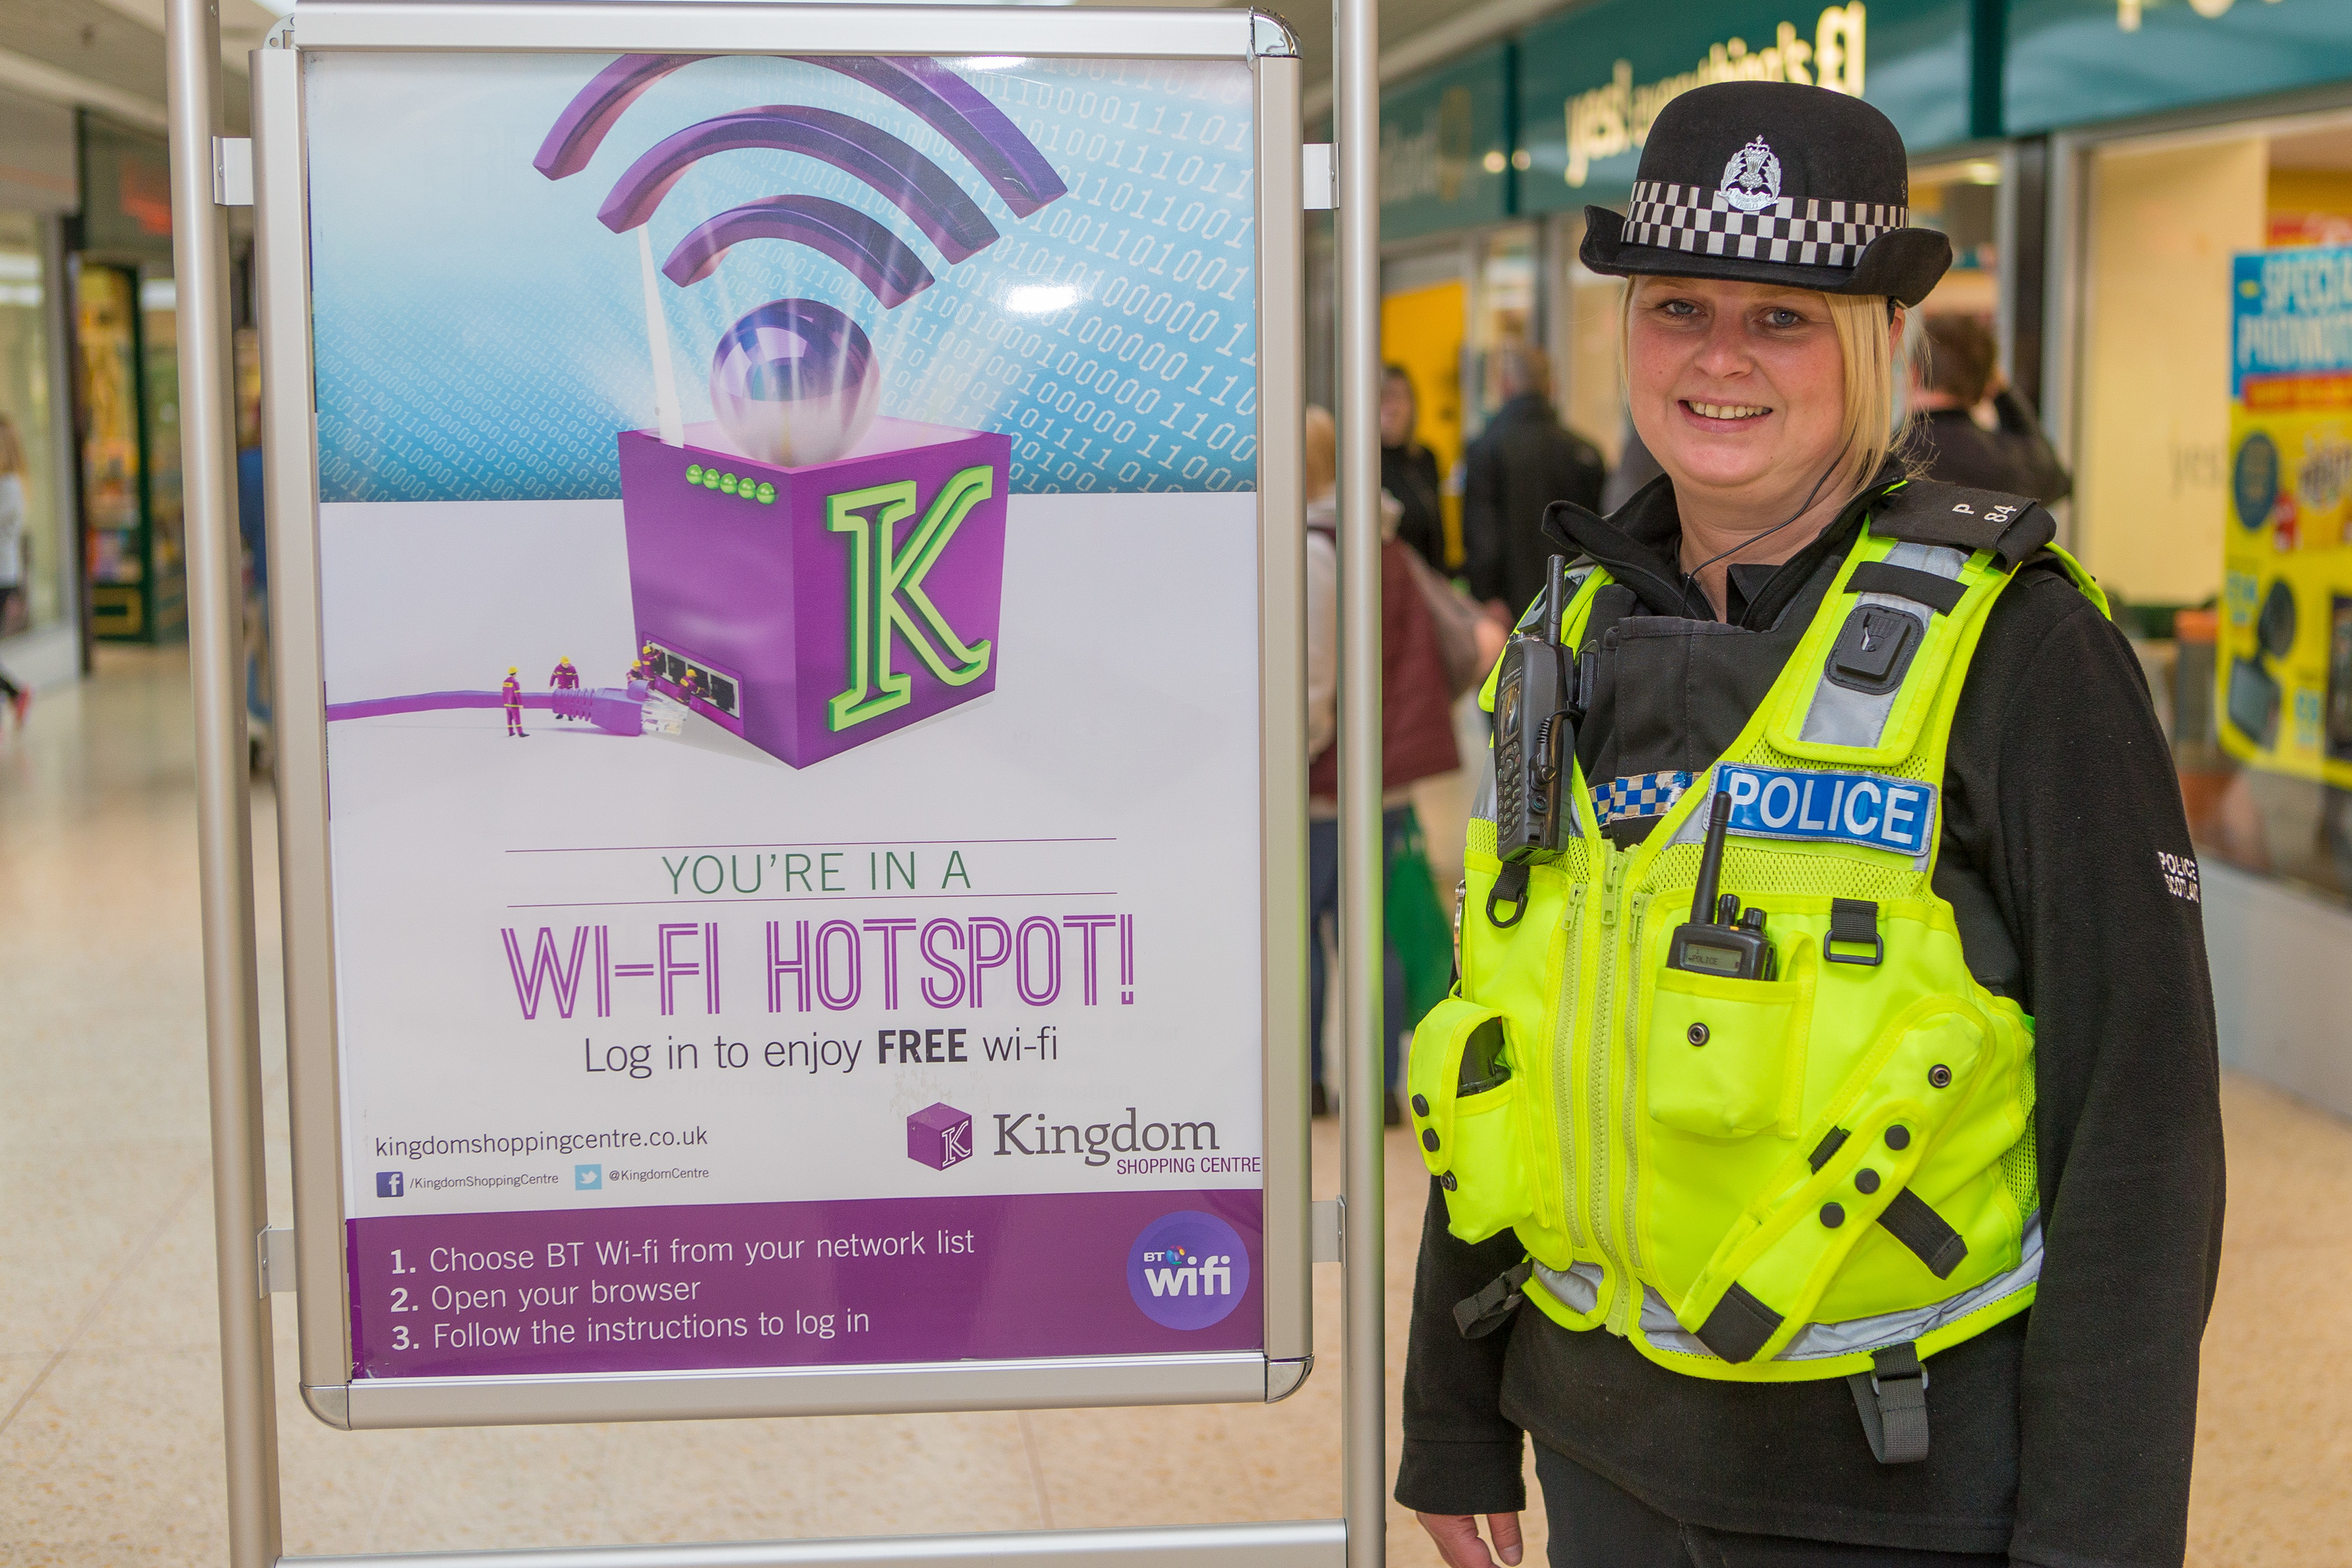 PC Leanne St Aubyn at the free wifi advertisements inside Kingdom Centre in Glenrothes.